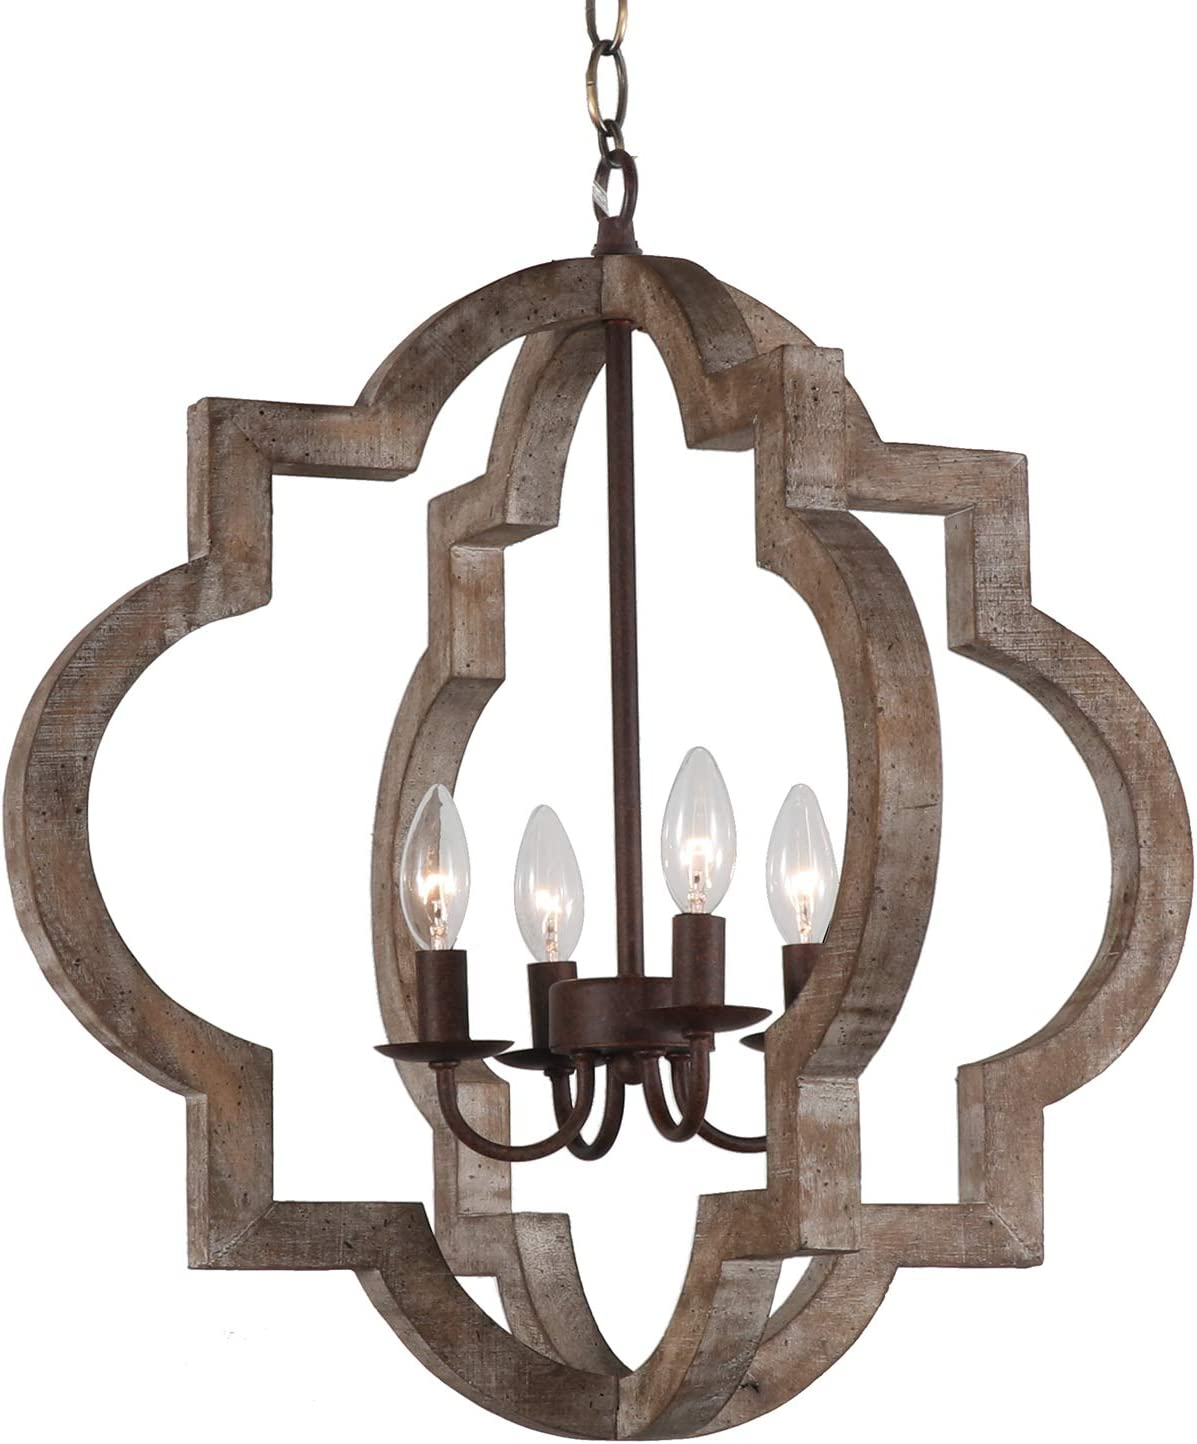 Vintage Retro Iron Wooden Chandelier Rustic Metal and Wood Ceiling Pendant Chandeliers Hanging Ceiling Mount Lamp Home Decor Light for Kitchen Island, Foyer, Dining Room, Bedroom, Living Room